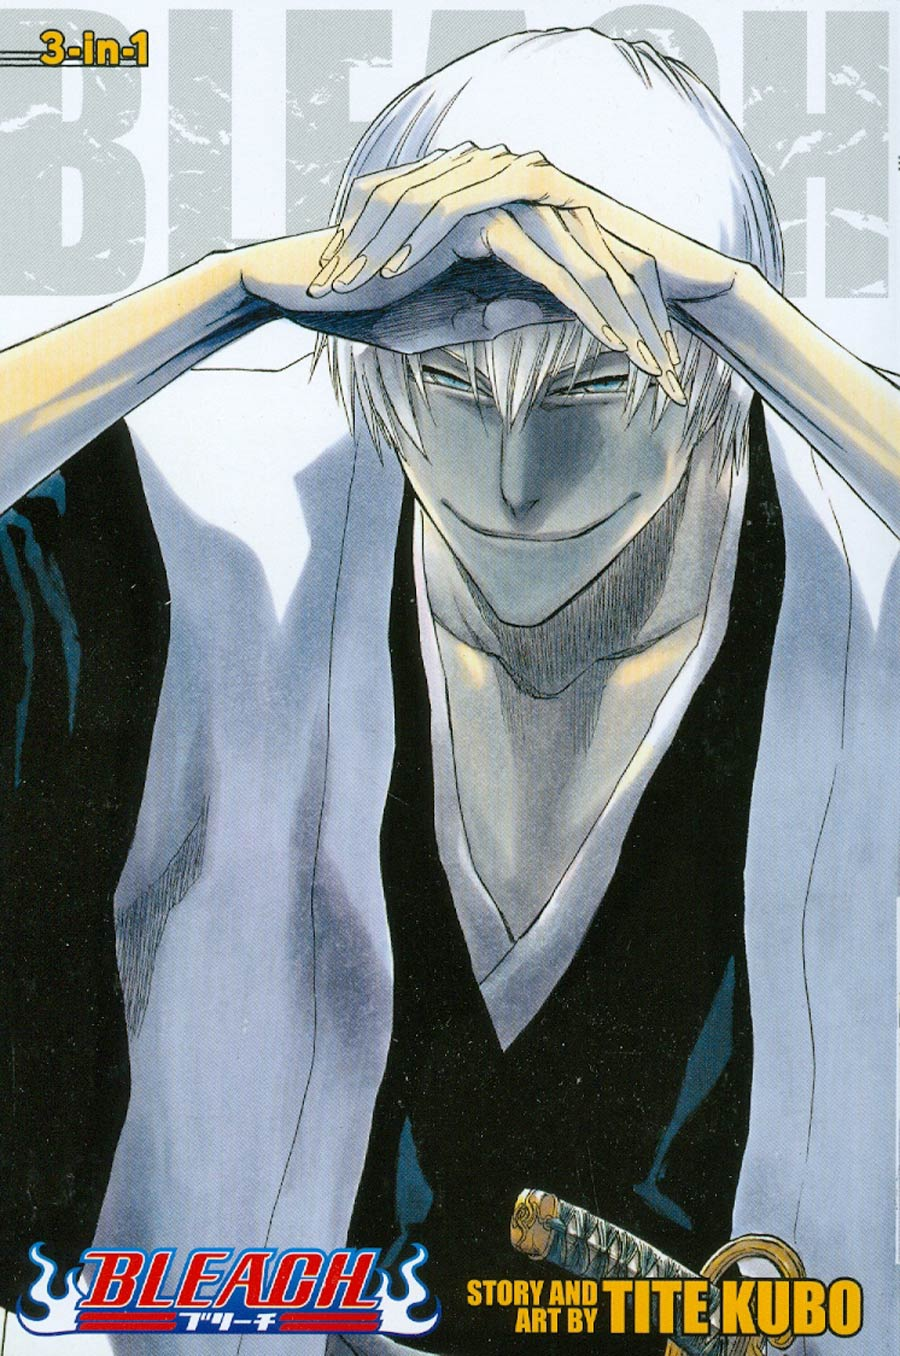 Bleach 3-In-1 Edition Vols 19 - 20 - 21 TP